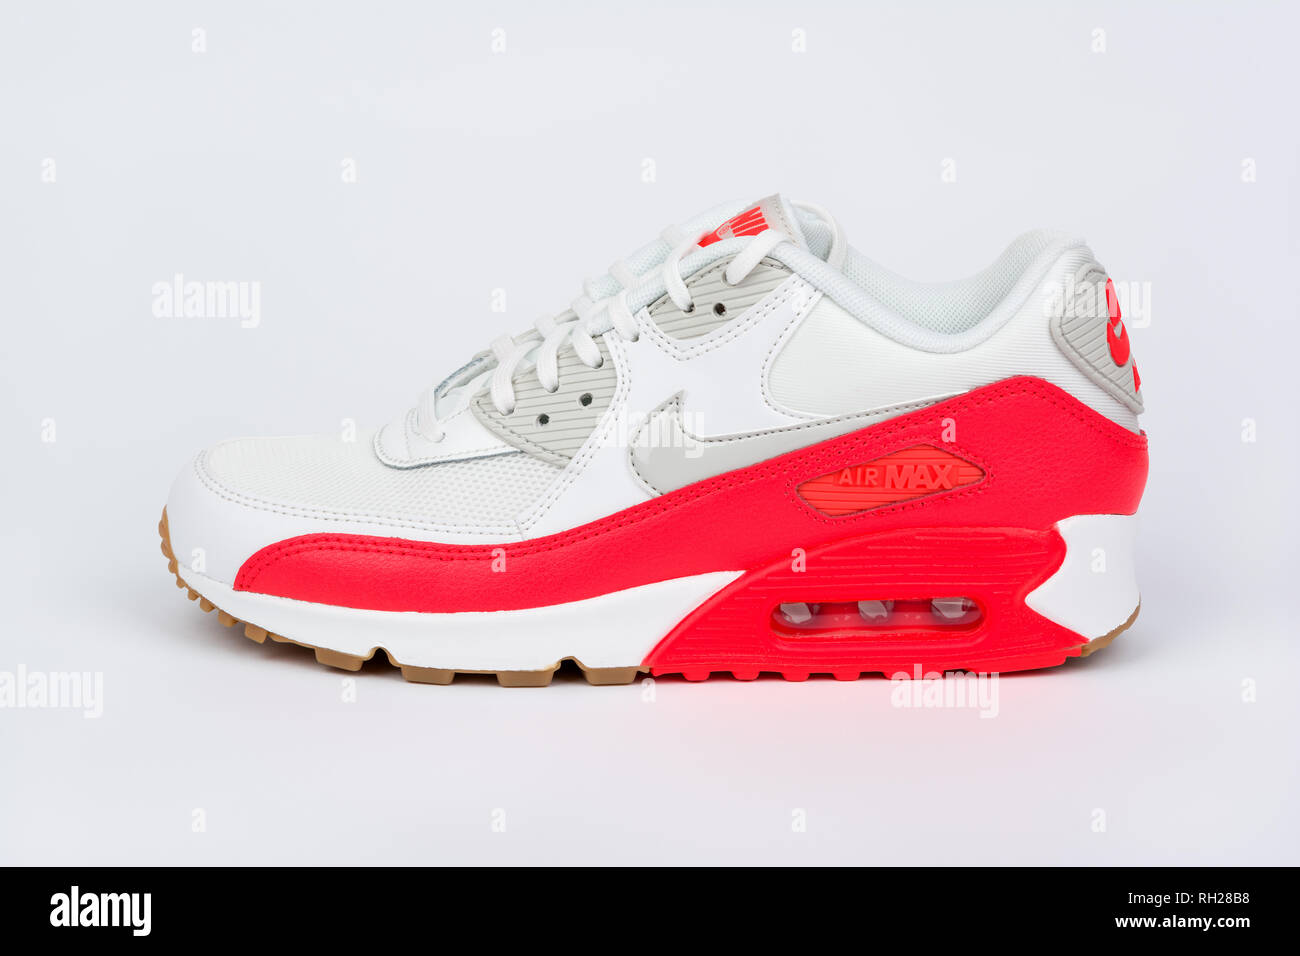 Air Max Stock Photos & Air Max Stock Images Alamy